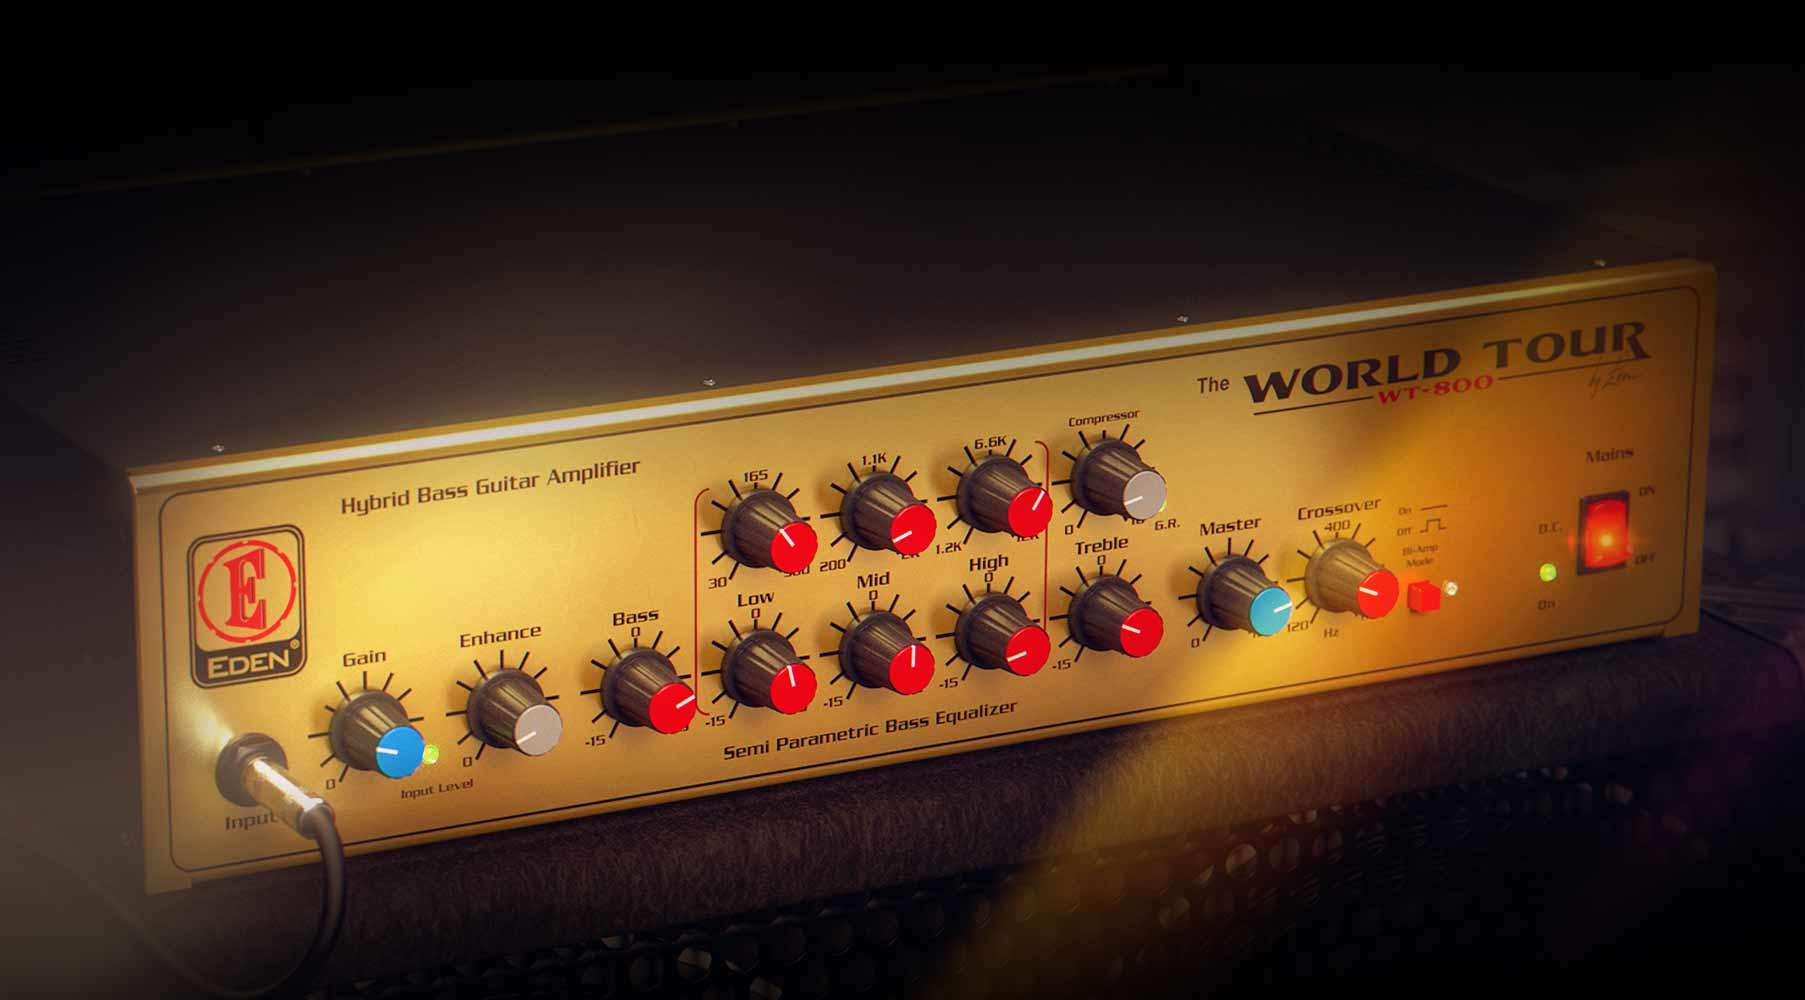 Eden® WT800 Bass Amplifier